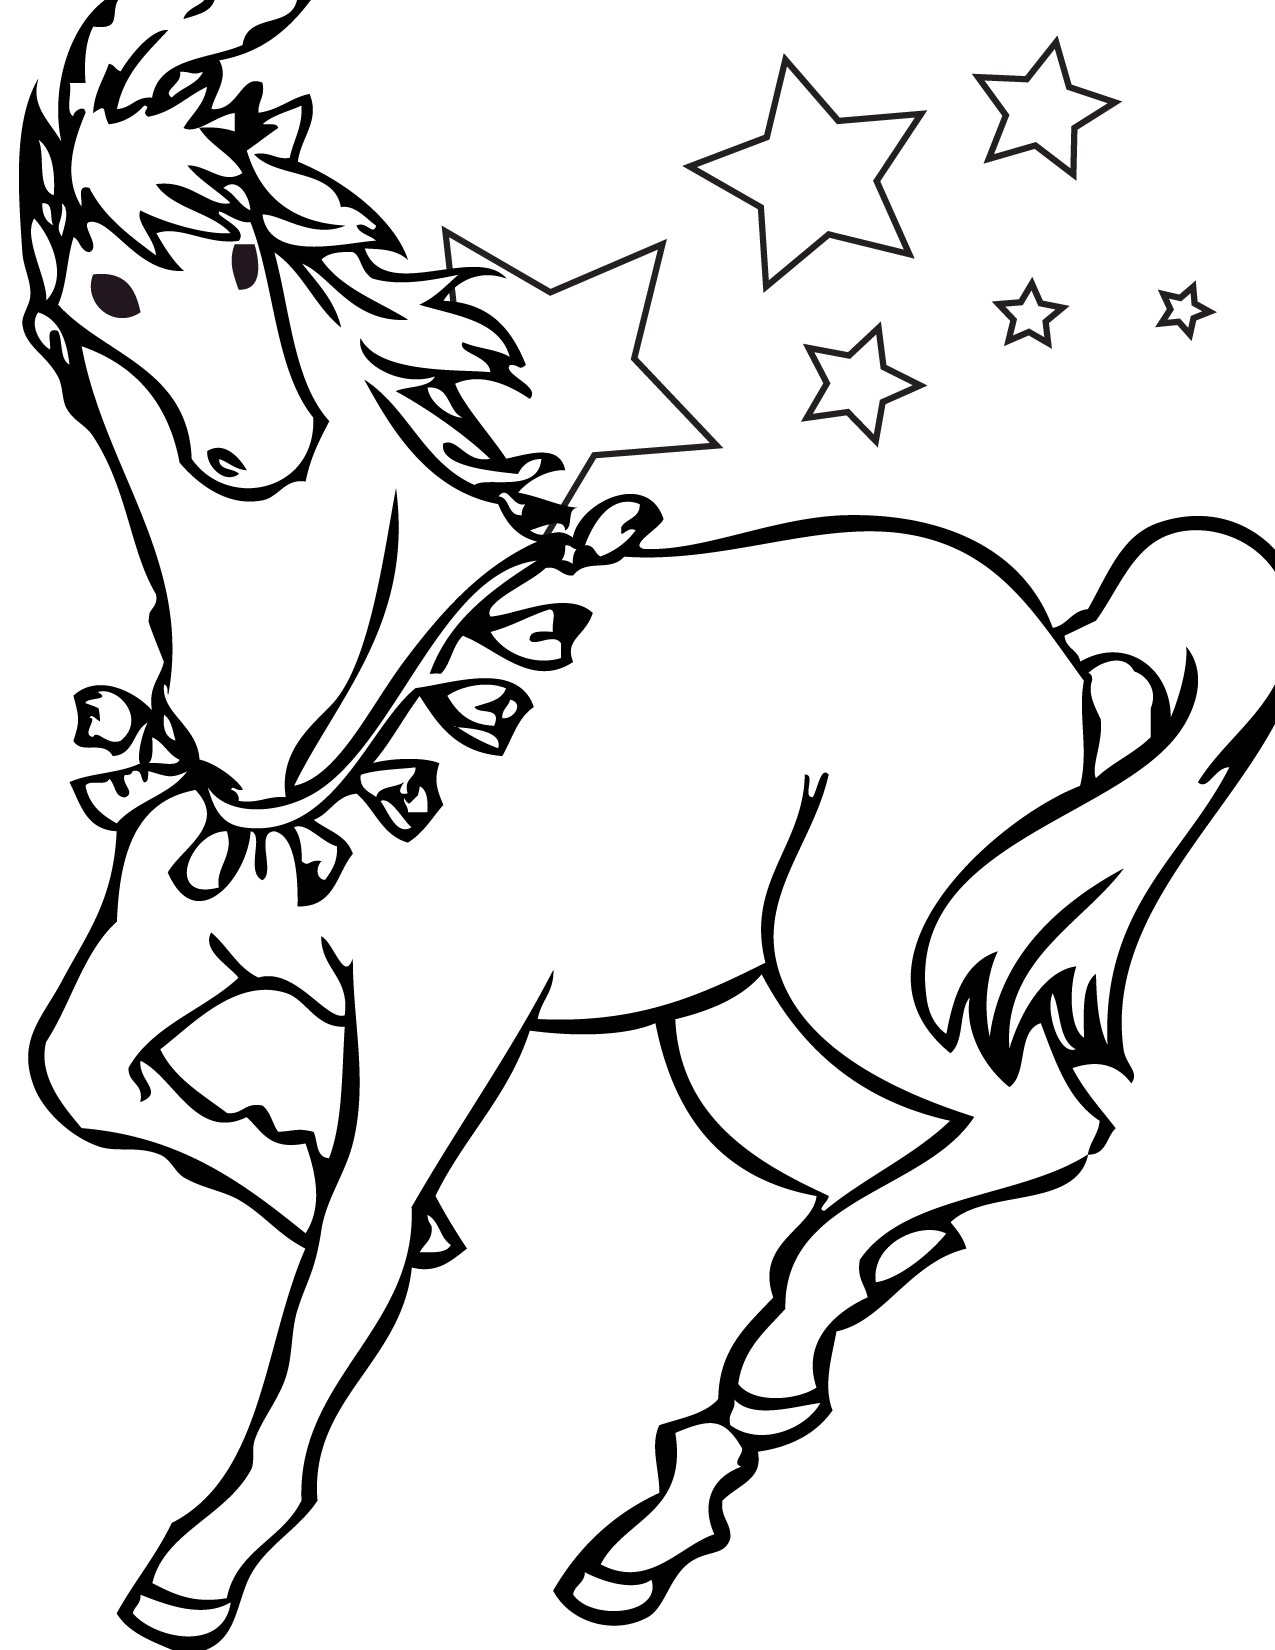 horse coloring sheets animal coloring pages for adults best coloring pages for coloring horse sheets